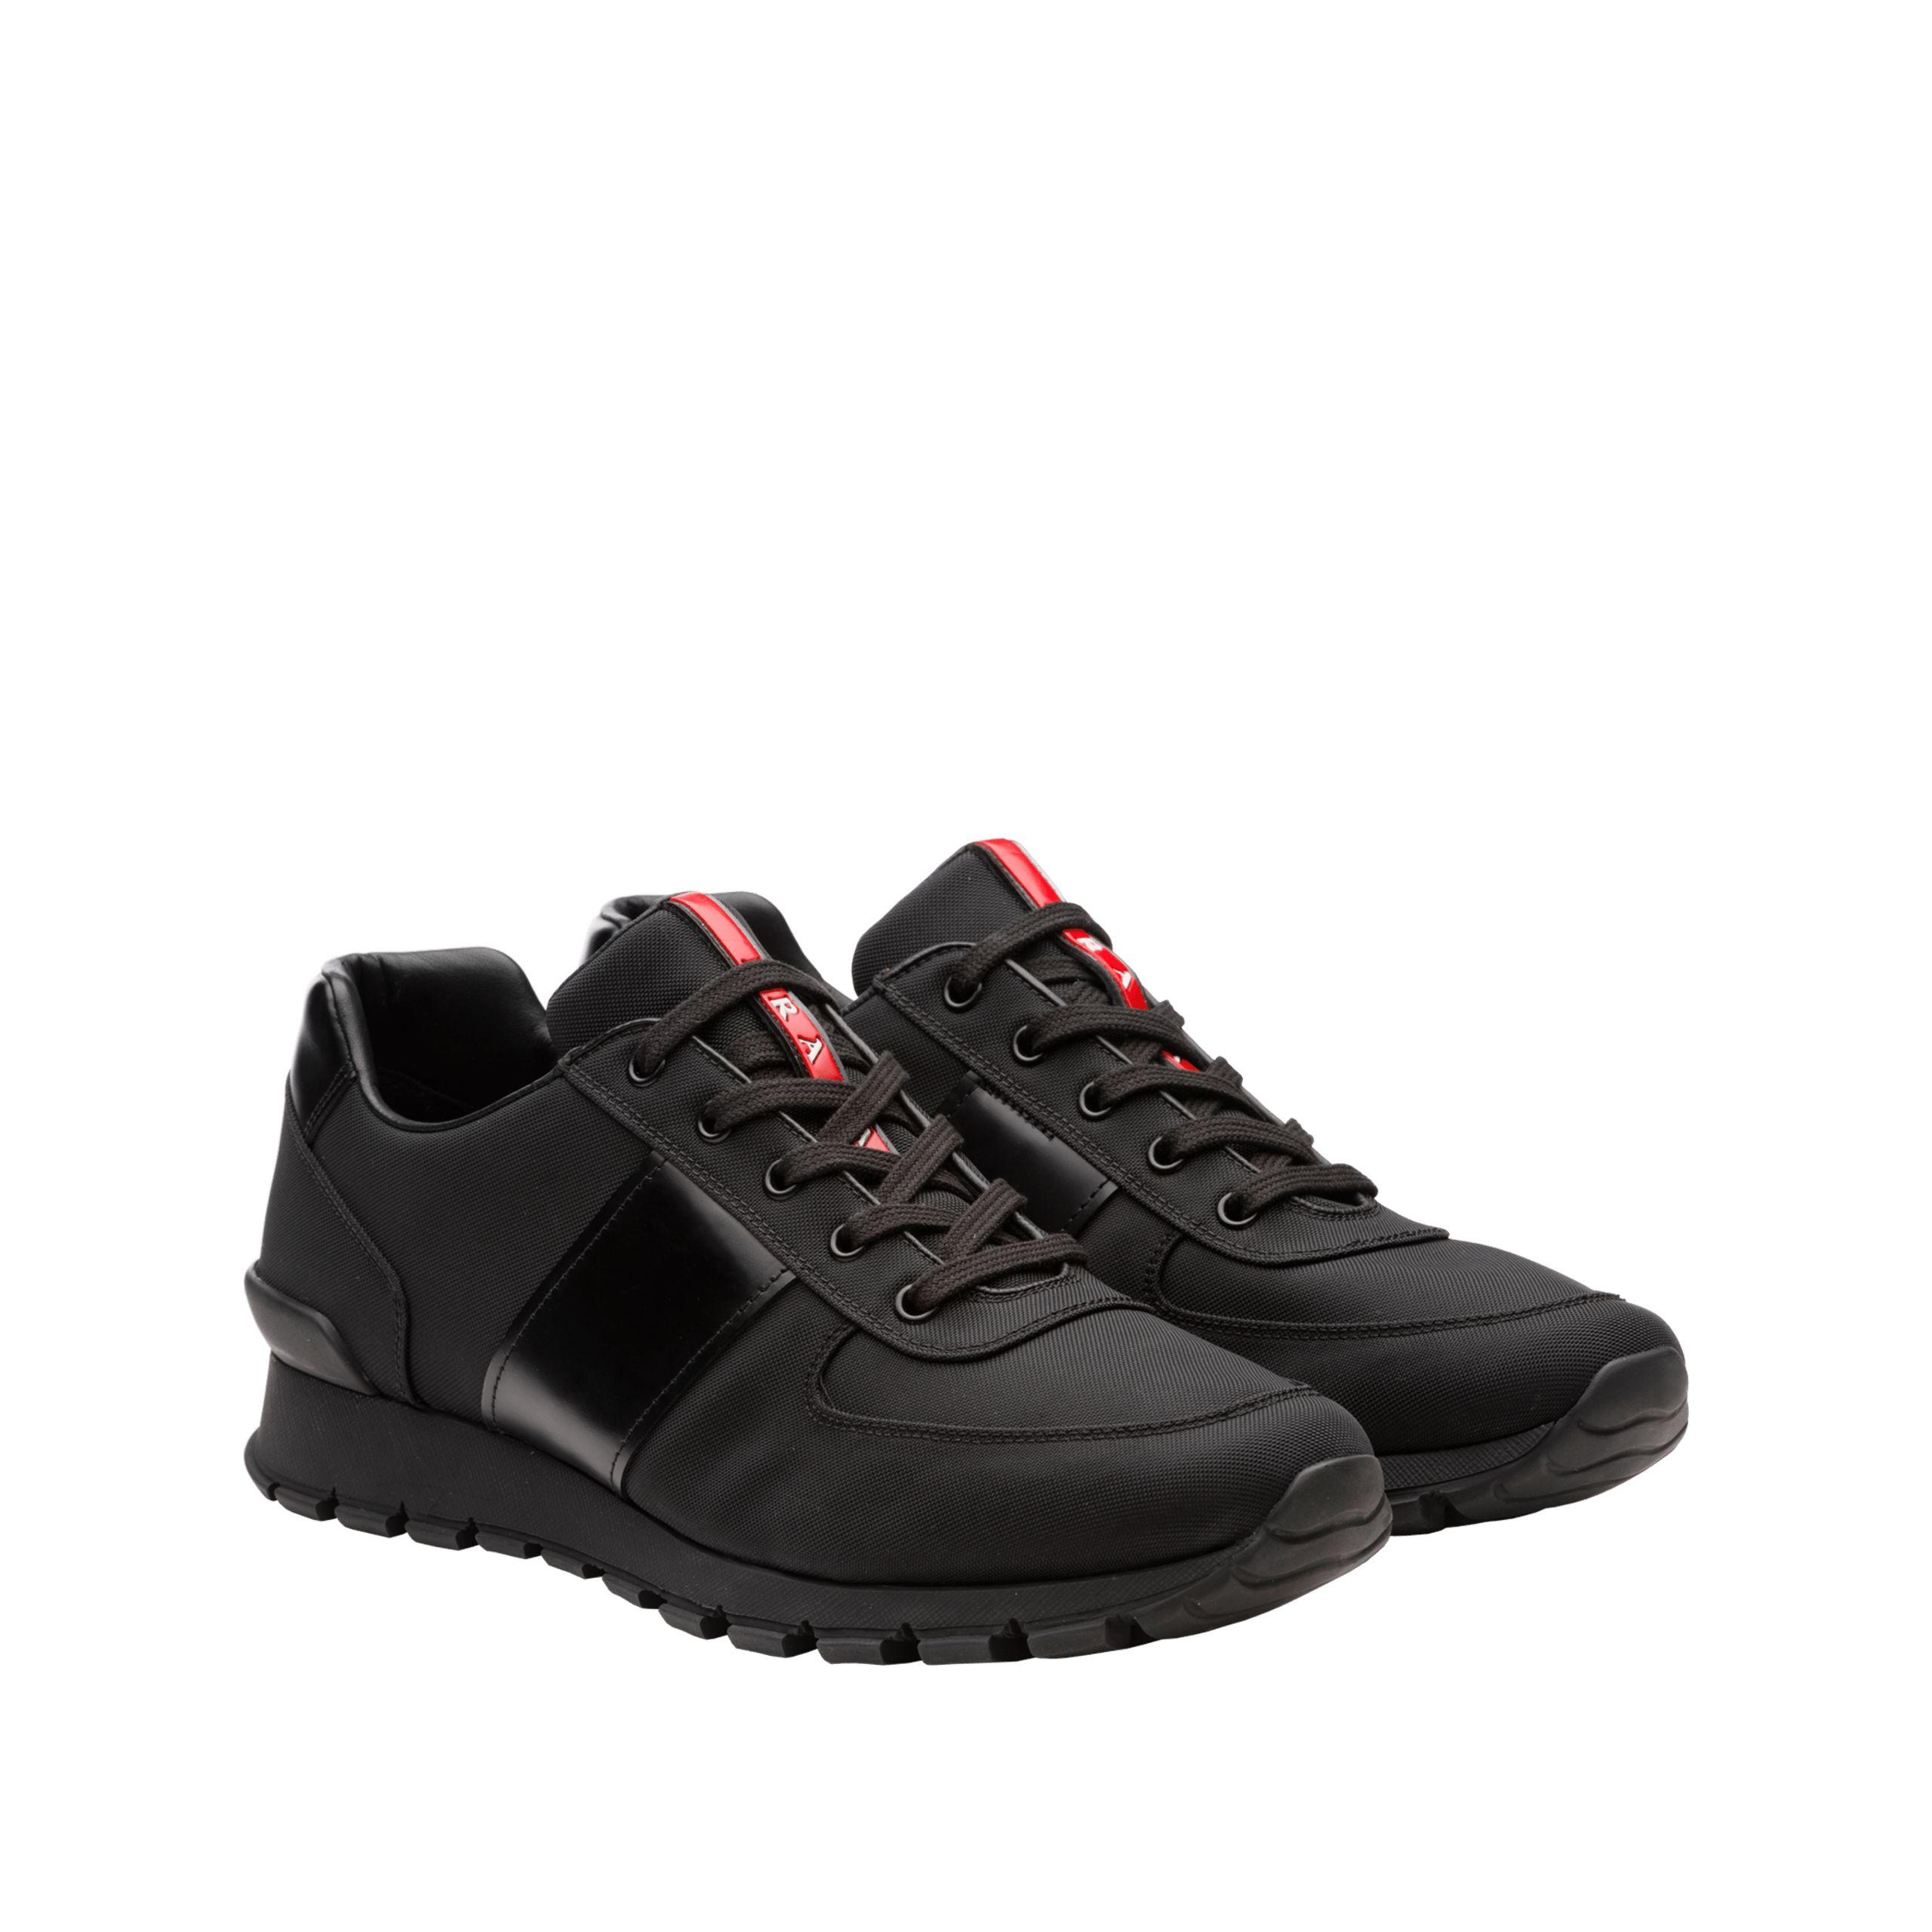 Prada Fabric And Leather Sneakers in